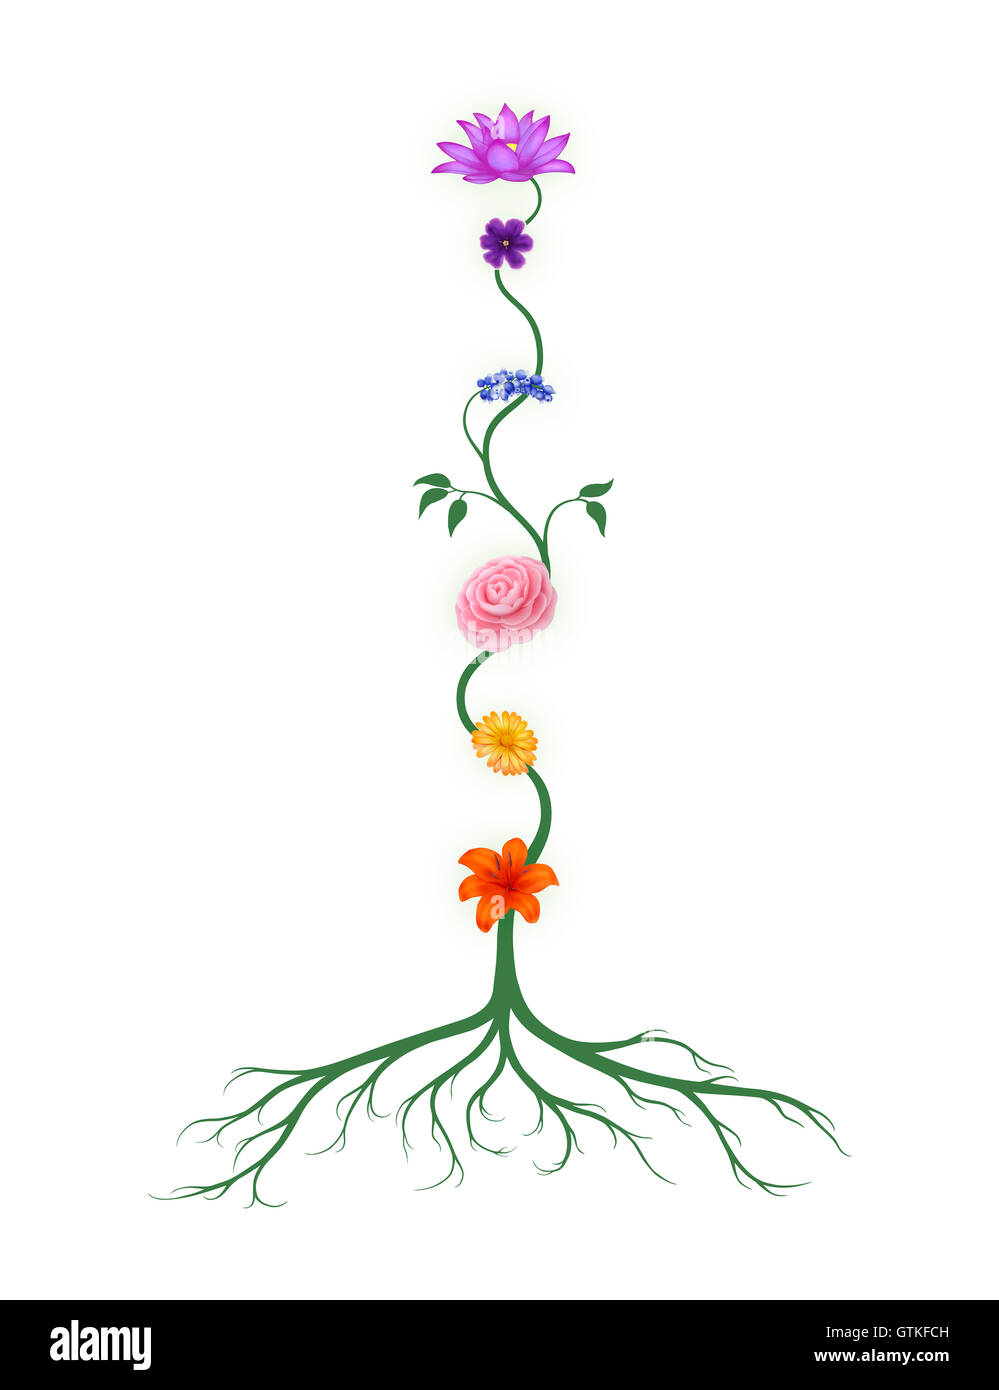 Chakra symbols represented as associated with chakras flowers and colors growing from a root chakra isolated illustration - Stock Image